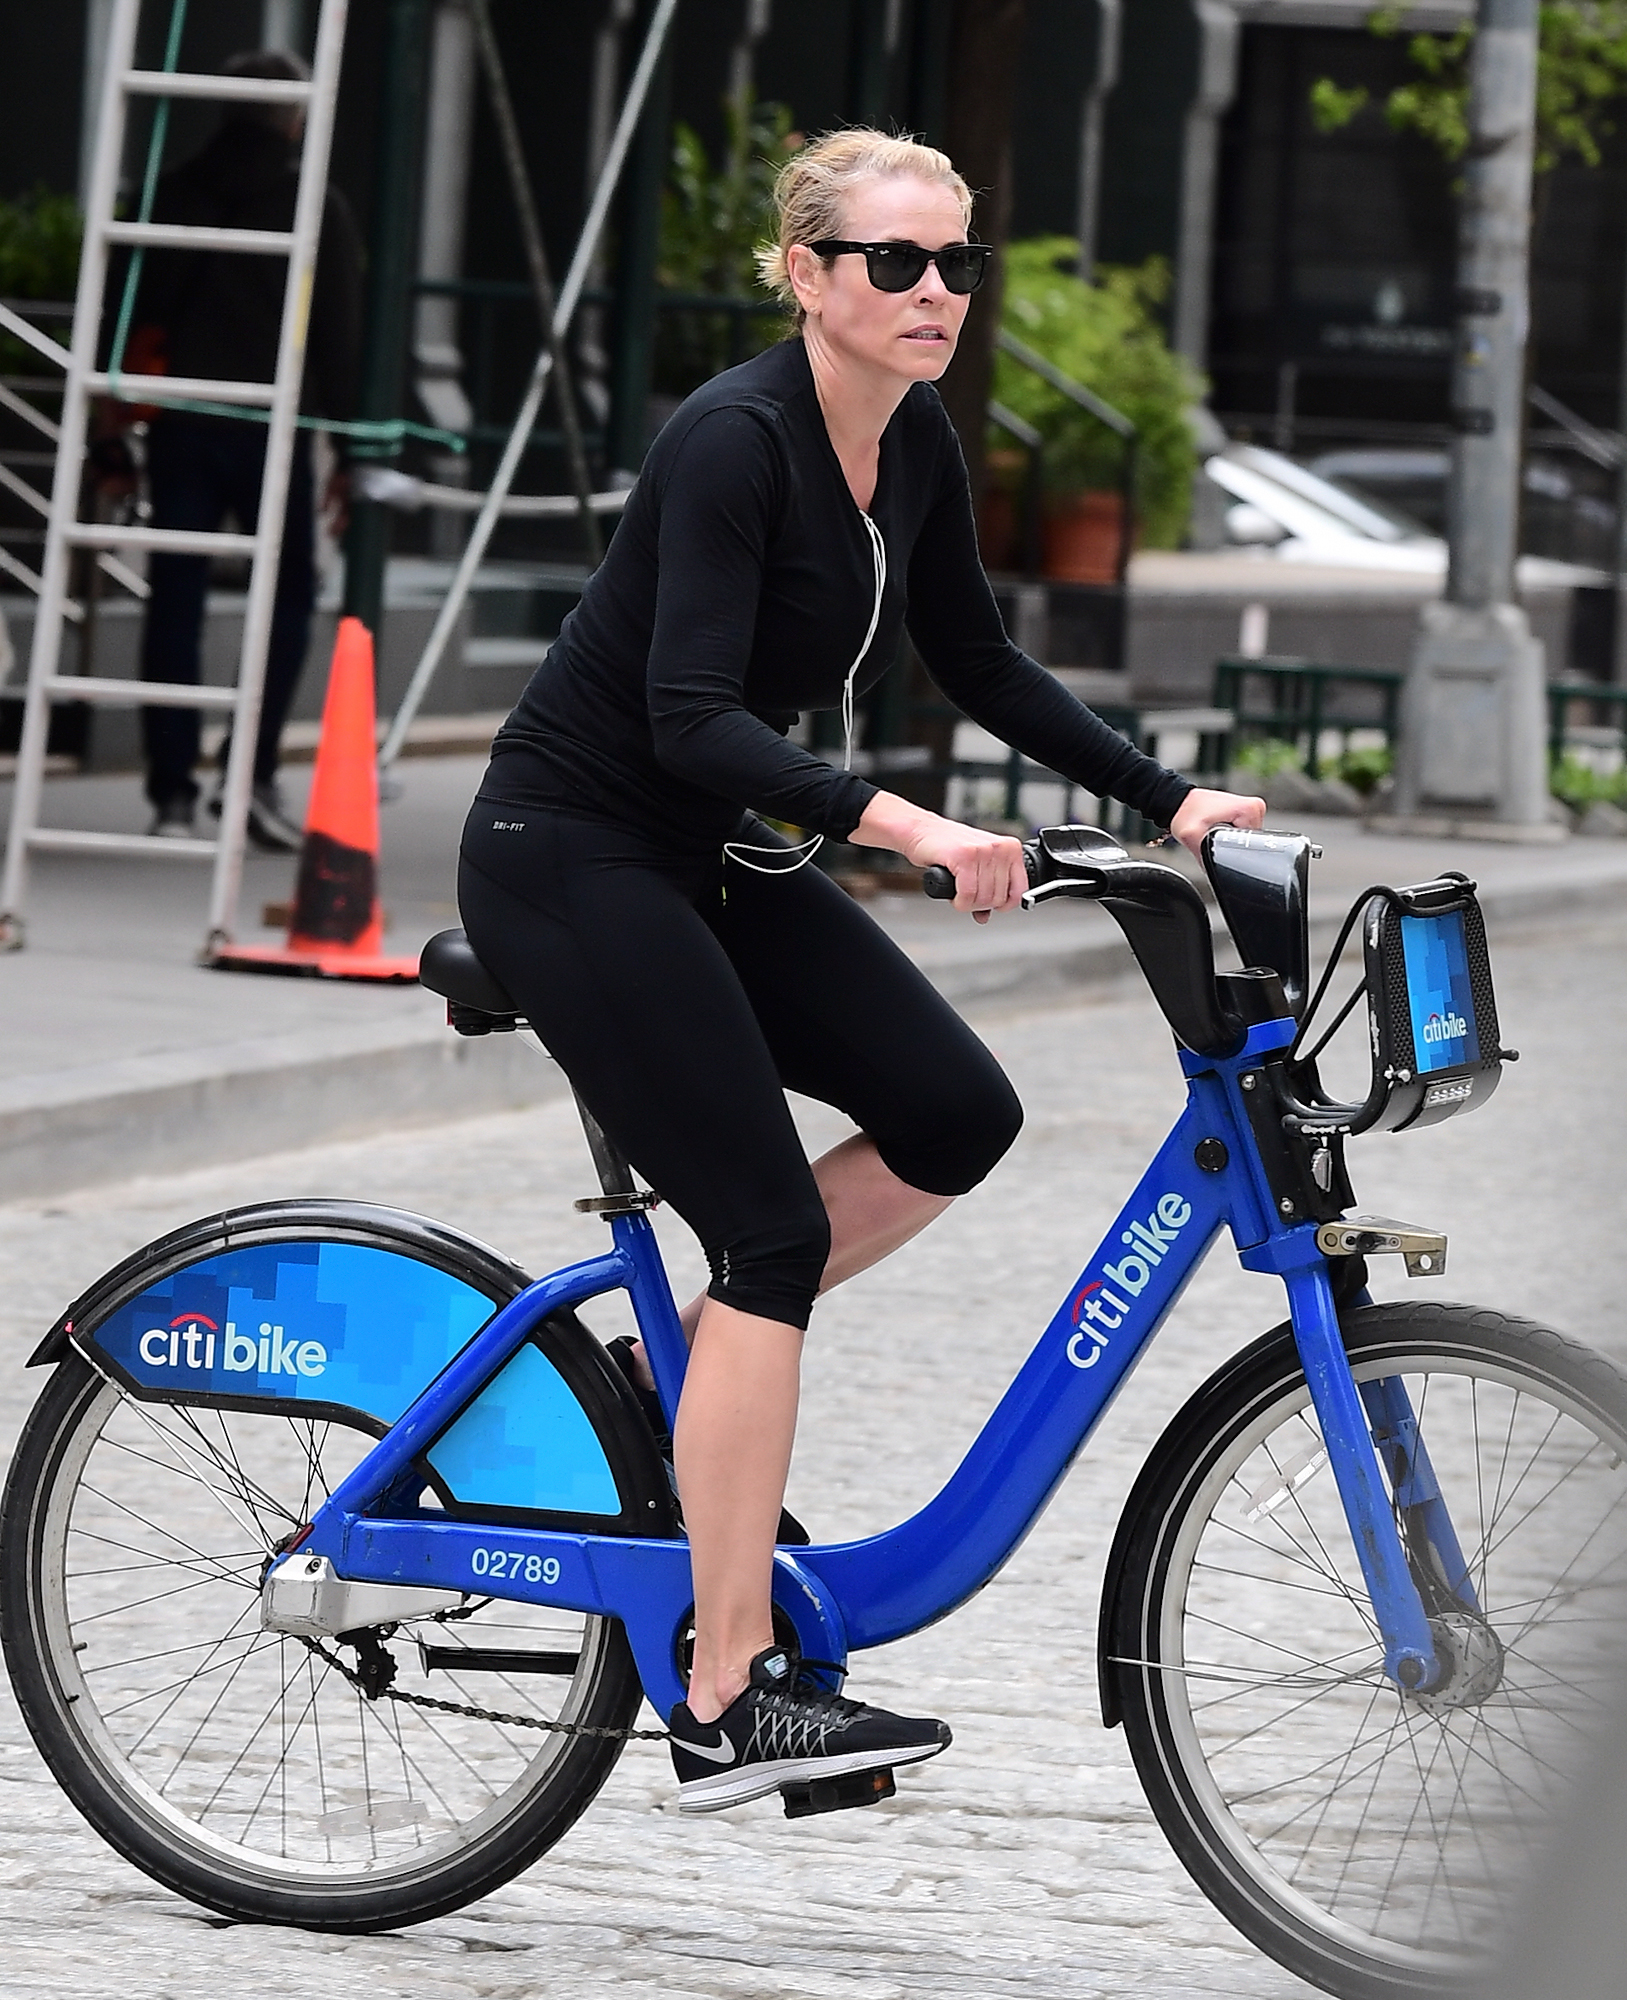 EXCLUSIVE: Chelsea Handler Spends the day with her makeup artist  in NYC Riding Citi Bikes